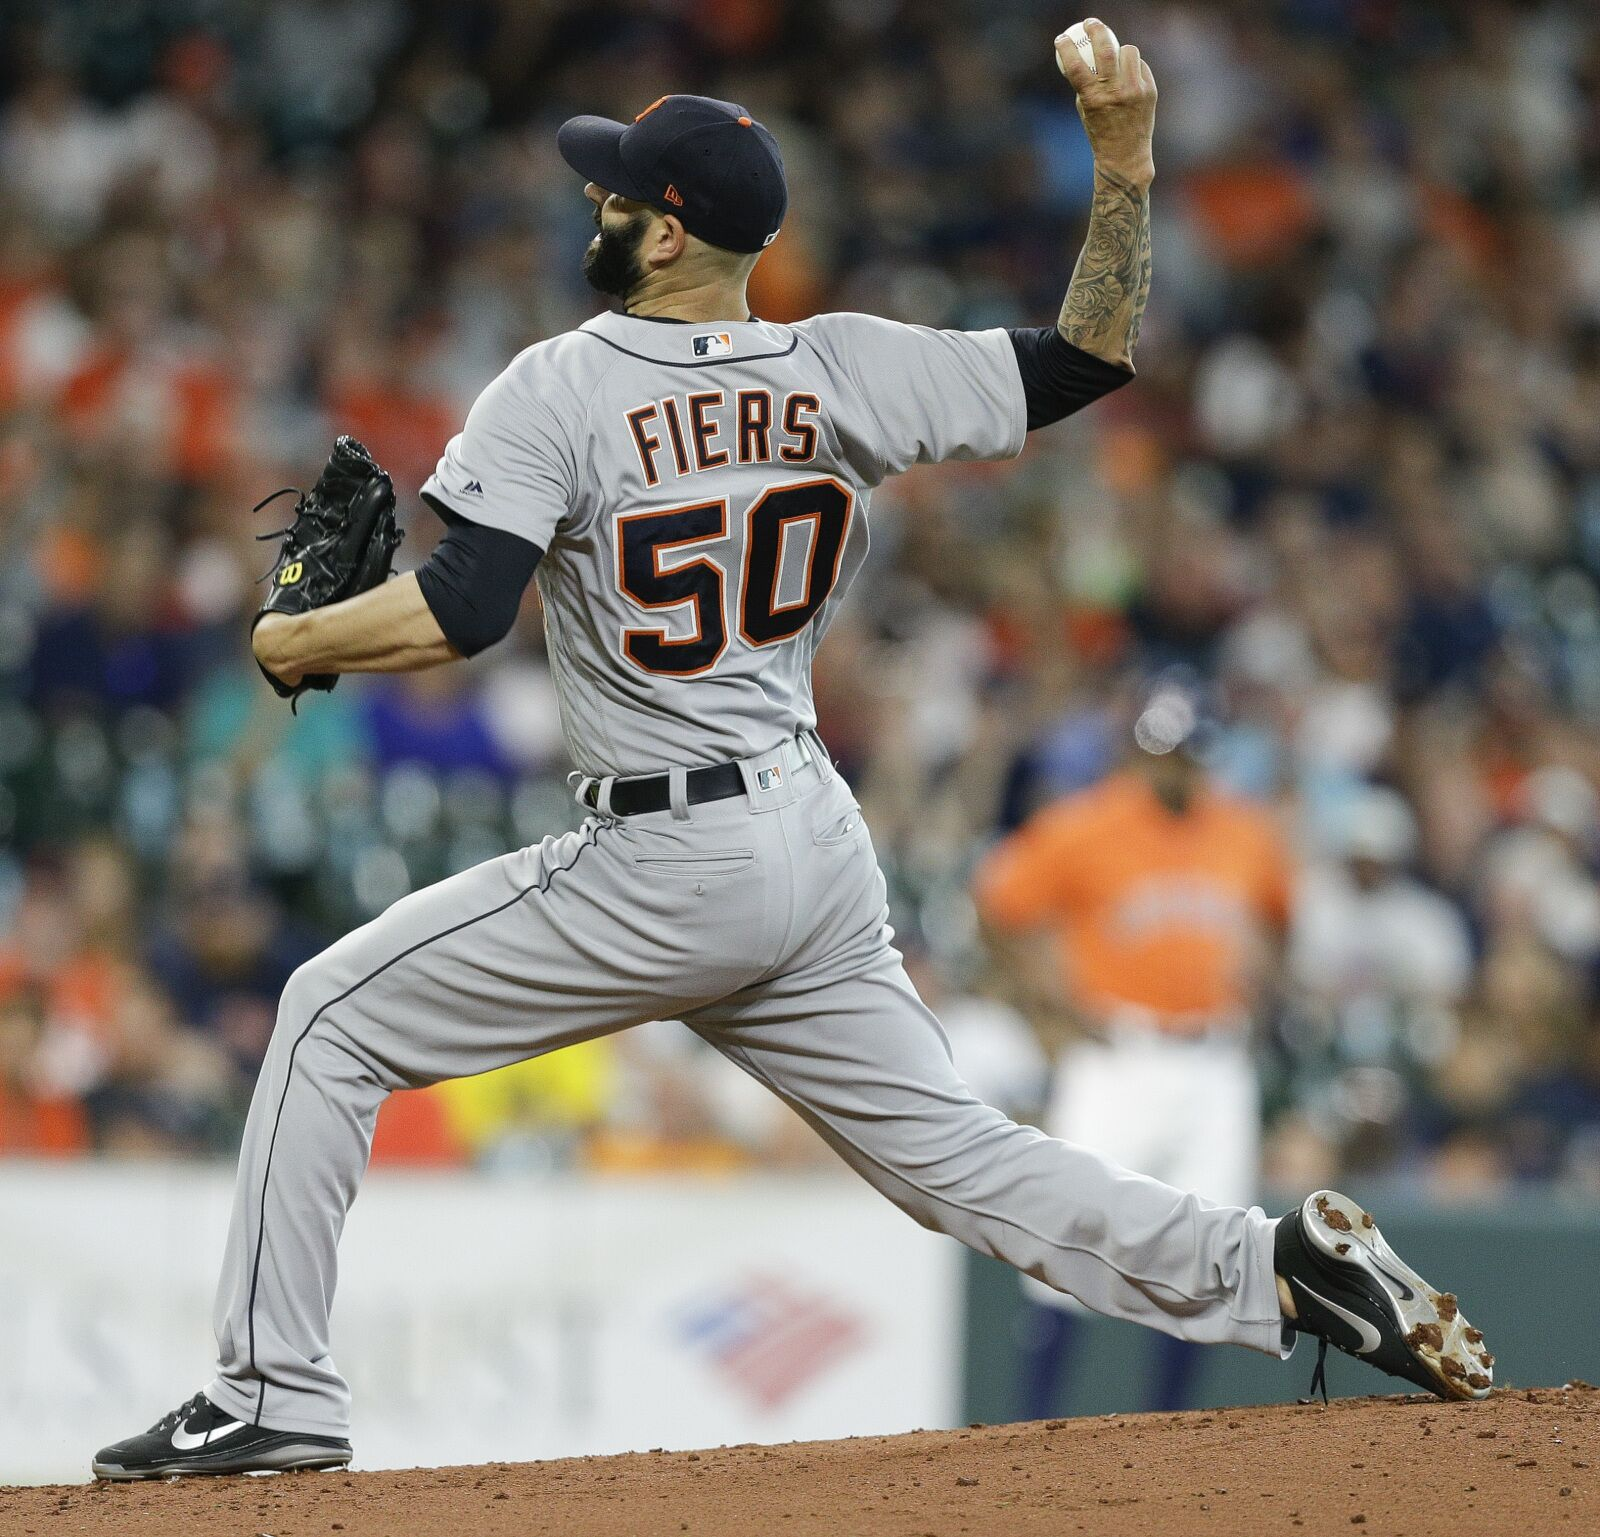 Mike Fiers College: Three Detroit Tigers Pitchers That Could Move At The Deadline